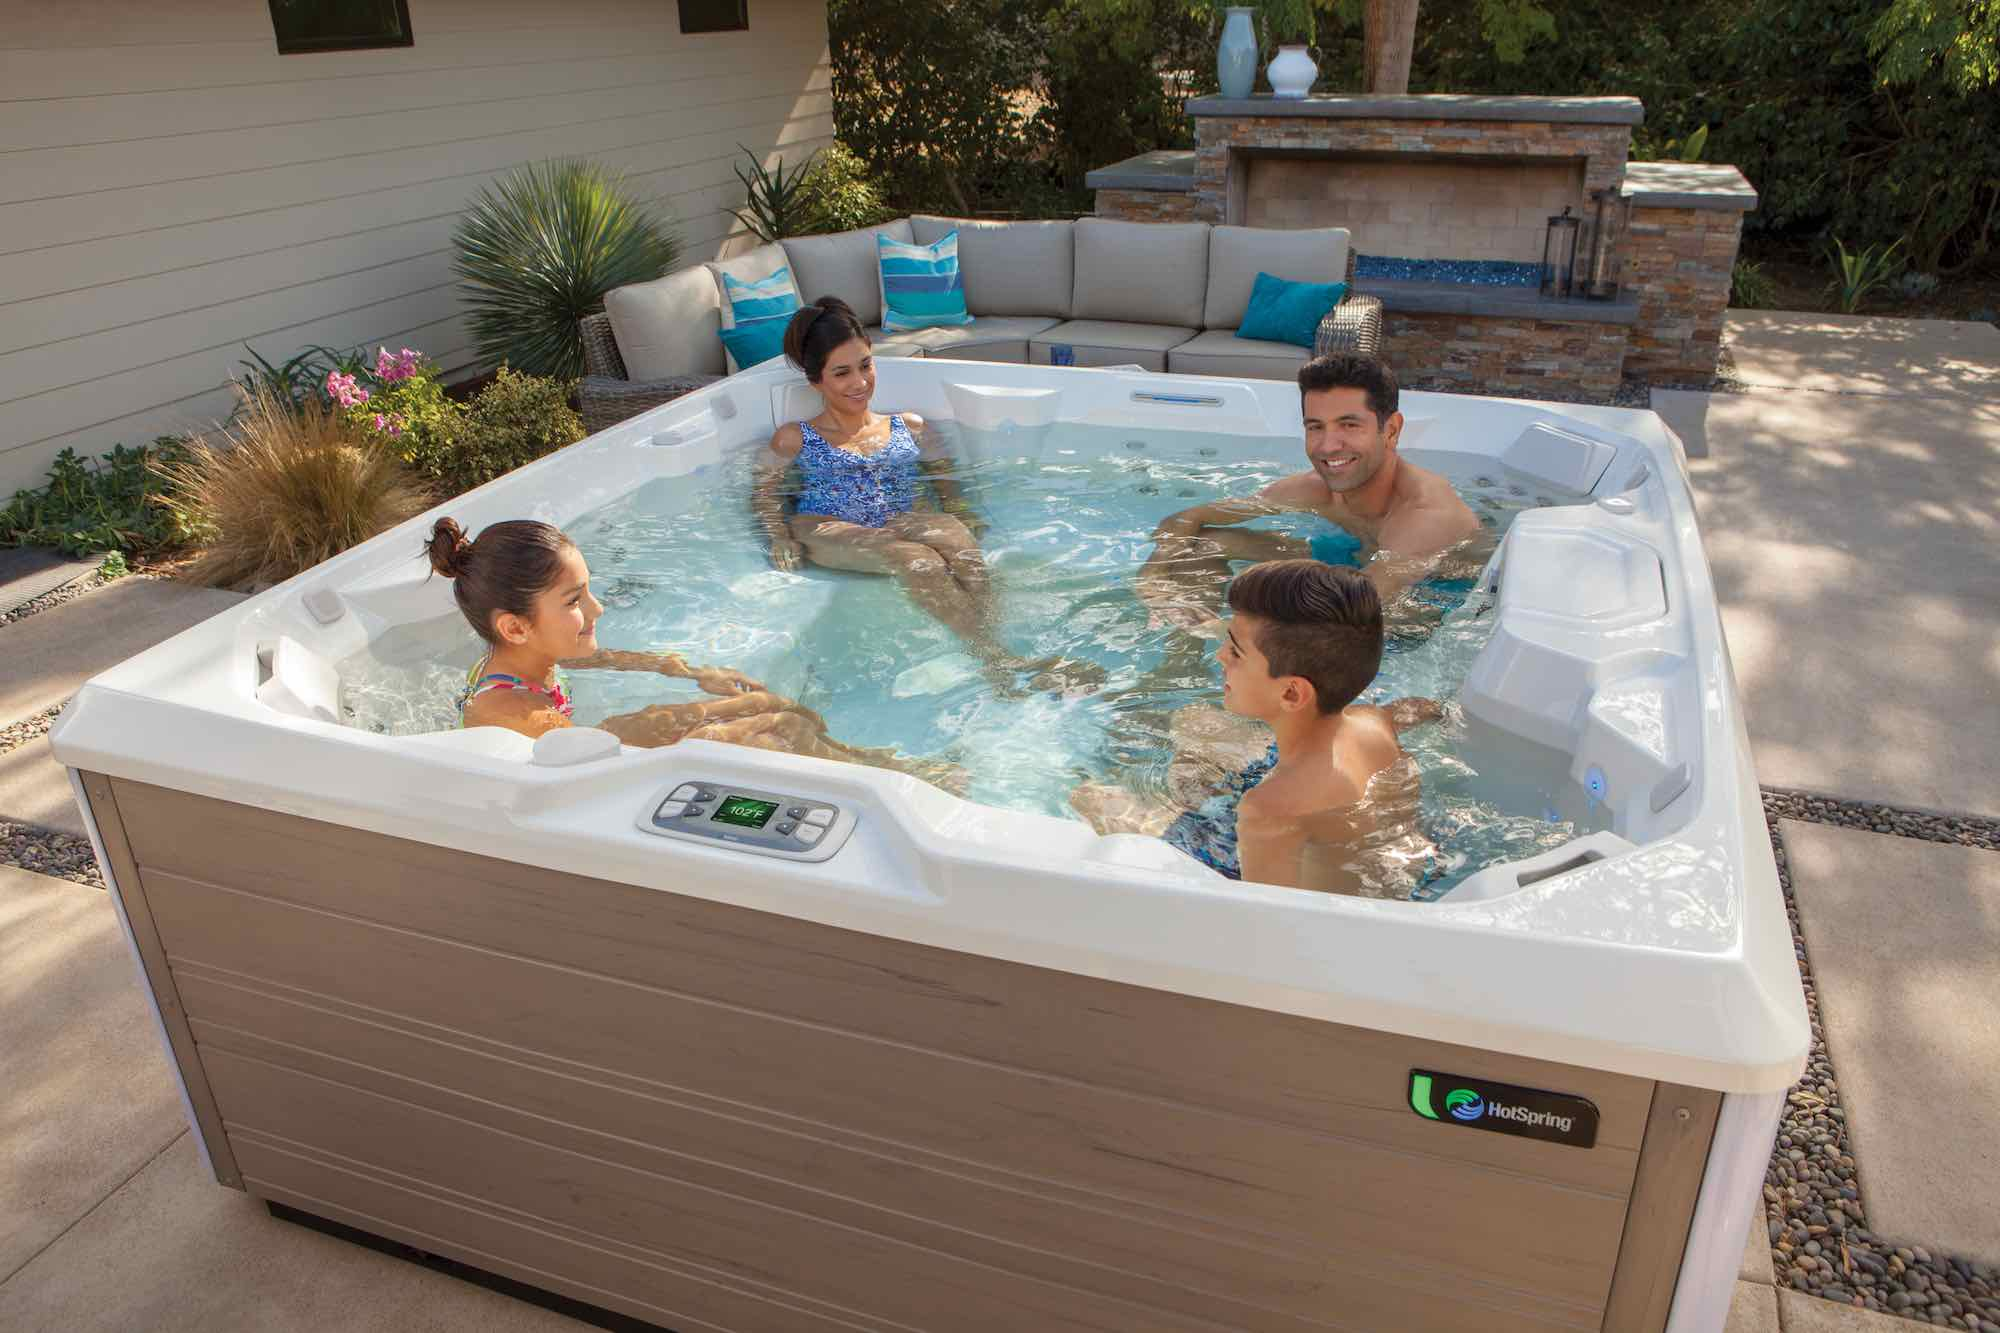 Hot Spring Spas Pulse Hot Tub at Lifestyle Outdoor in Los Angeles, California